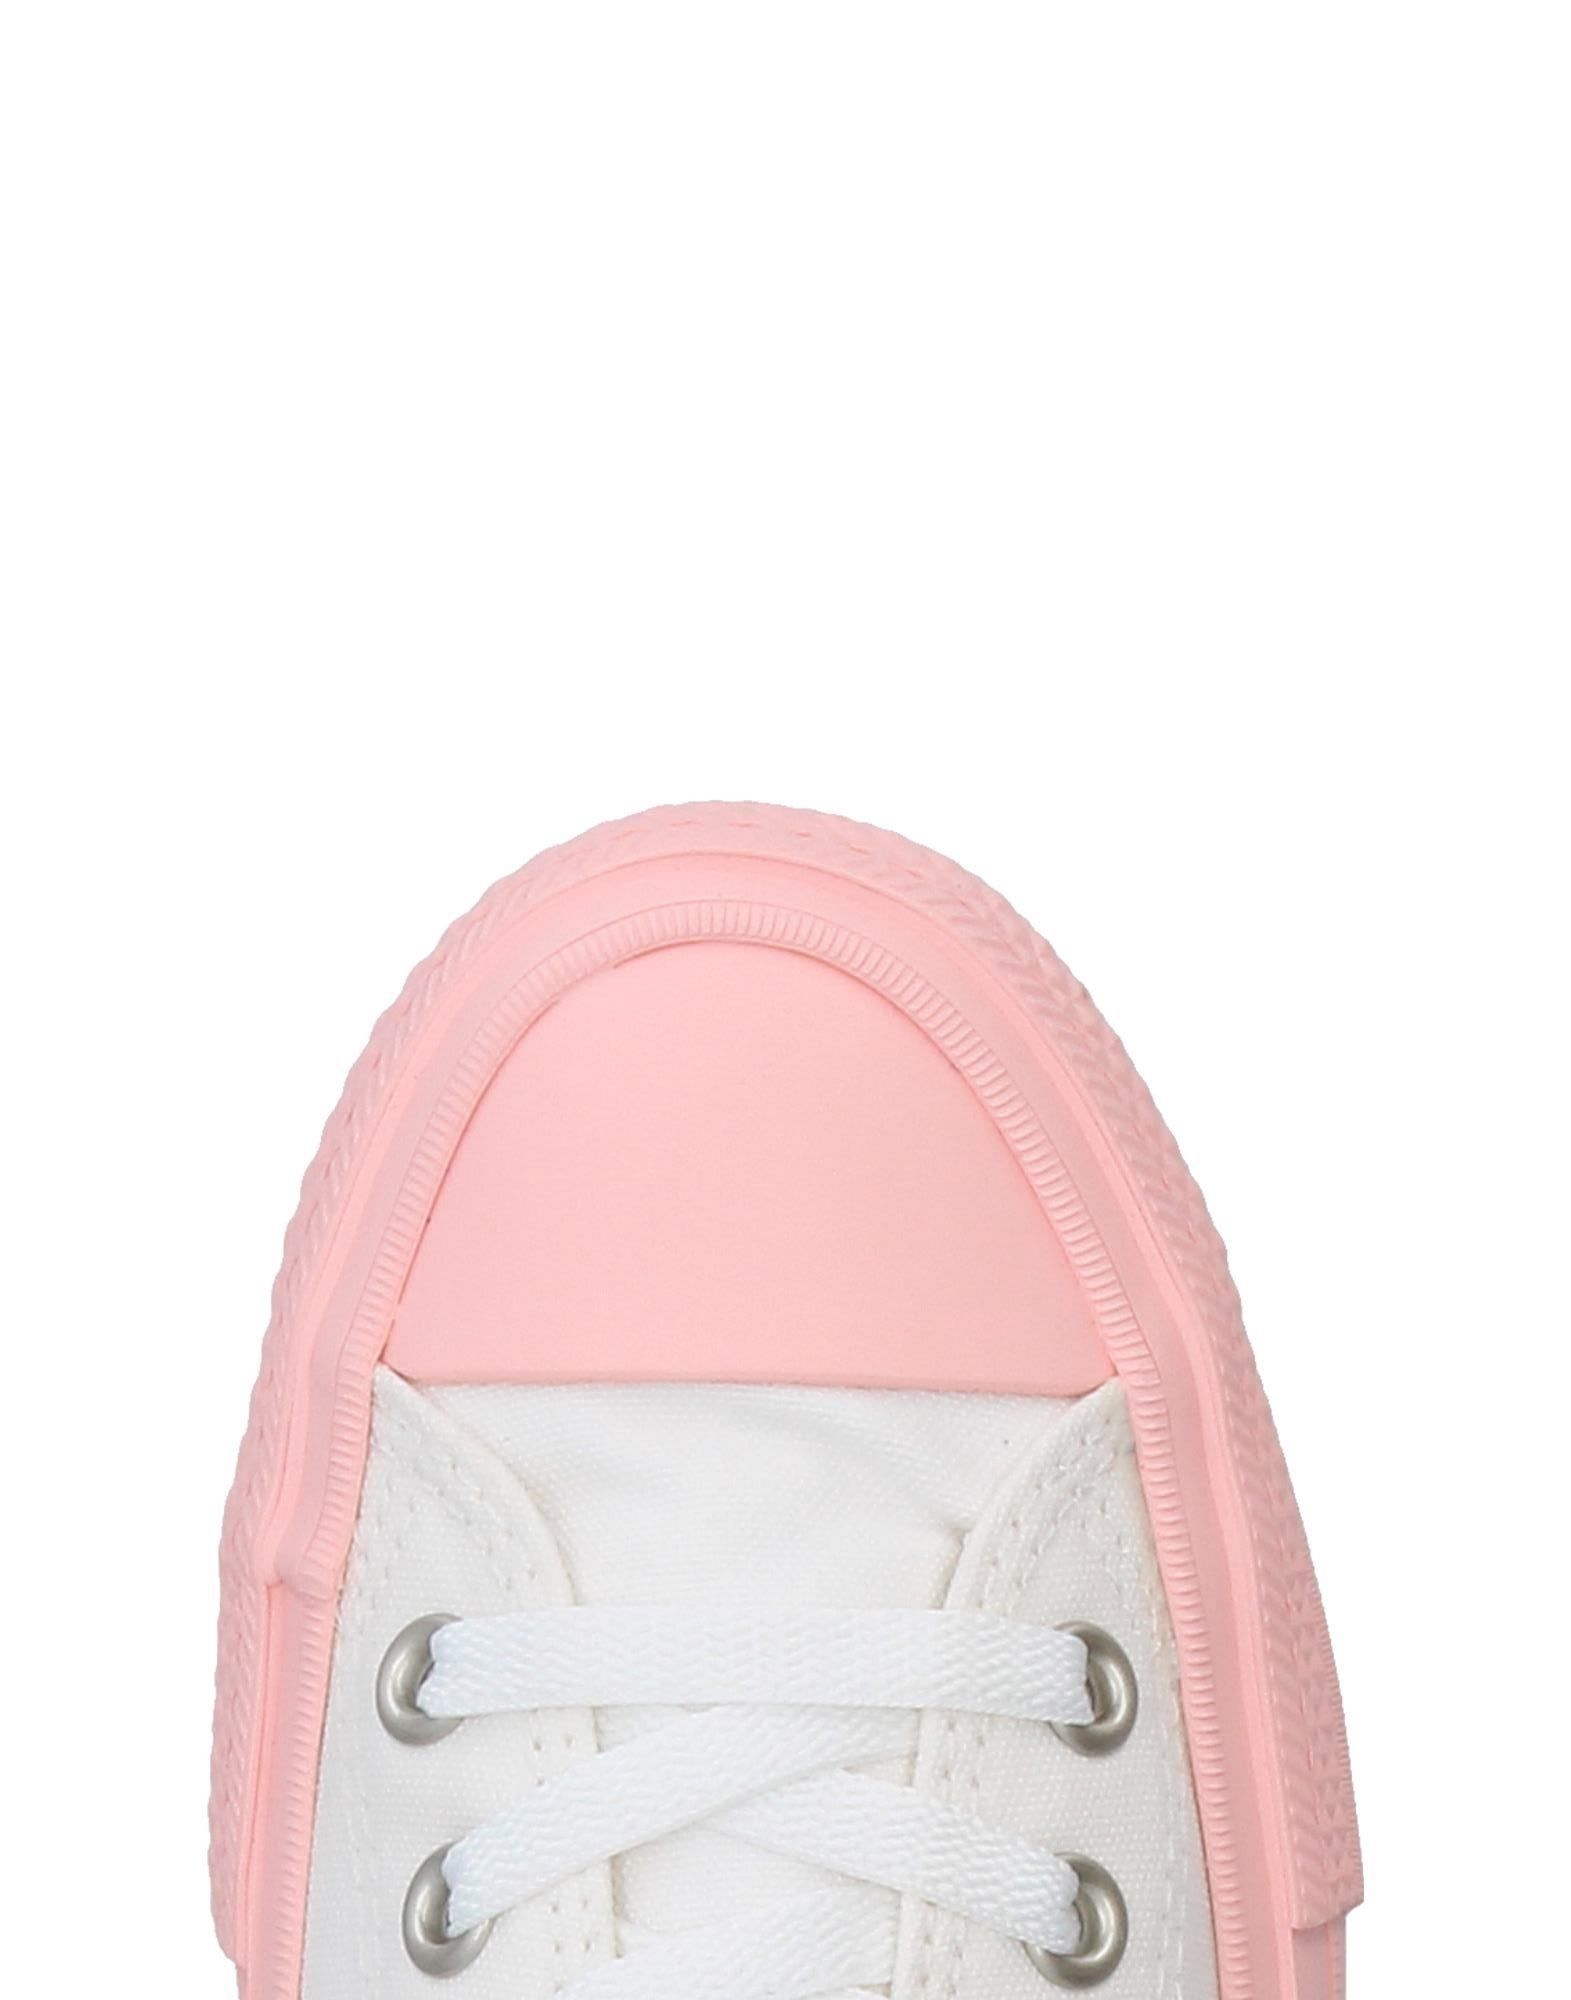 Sneakers Converse All Star Chuck Taylor Ii Femme - Sneakers Converse All Star Chuck Taylor Ii sur